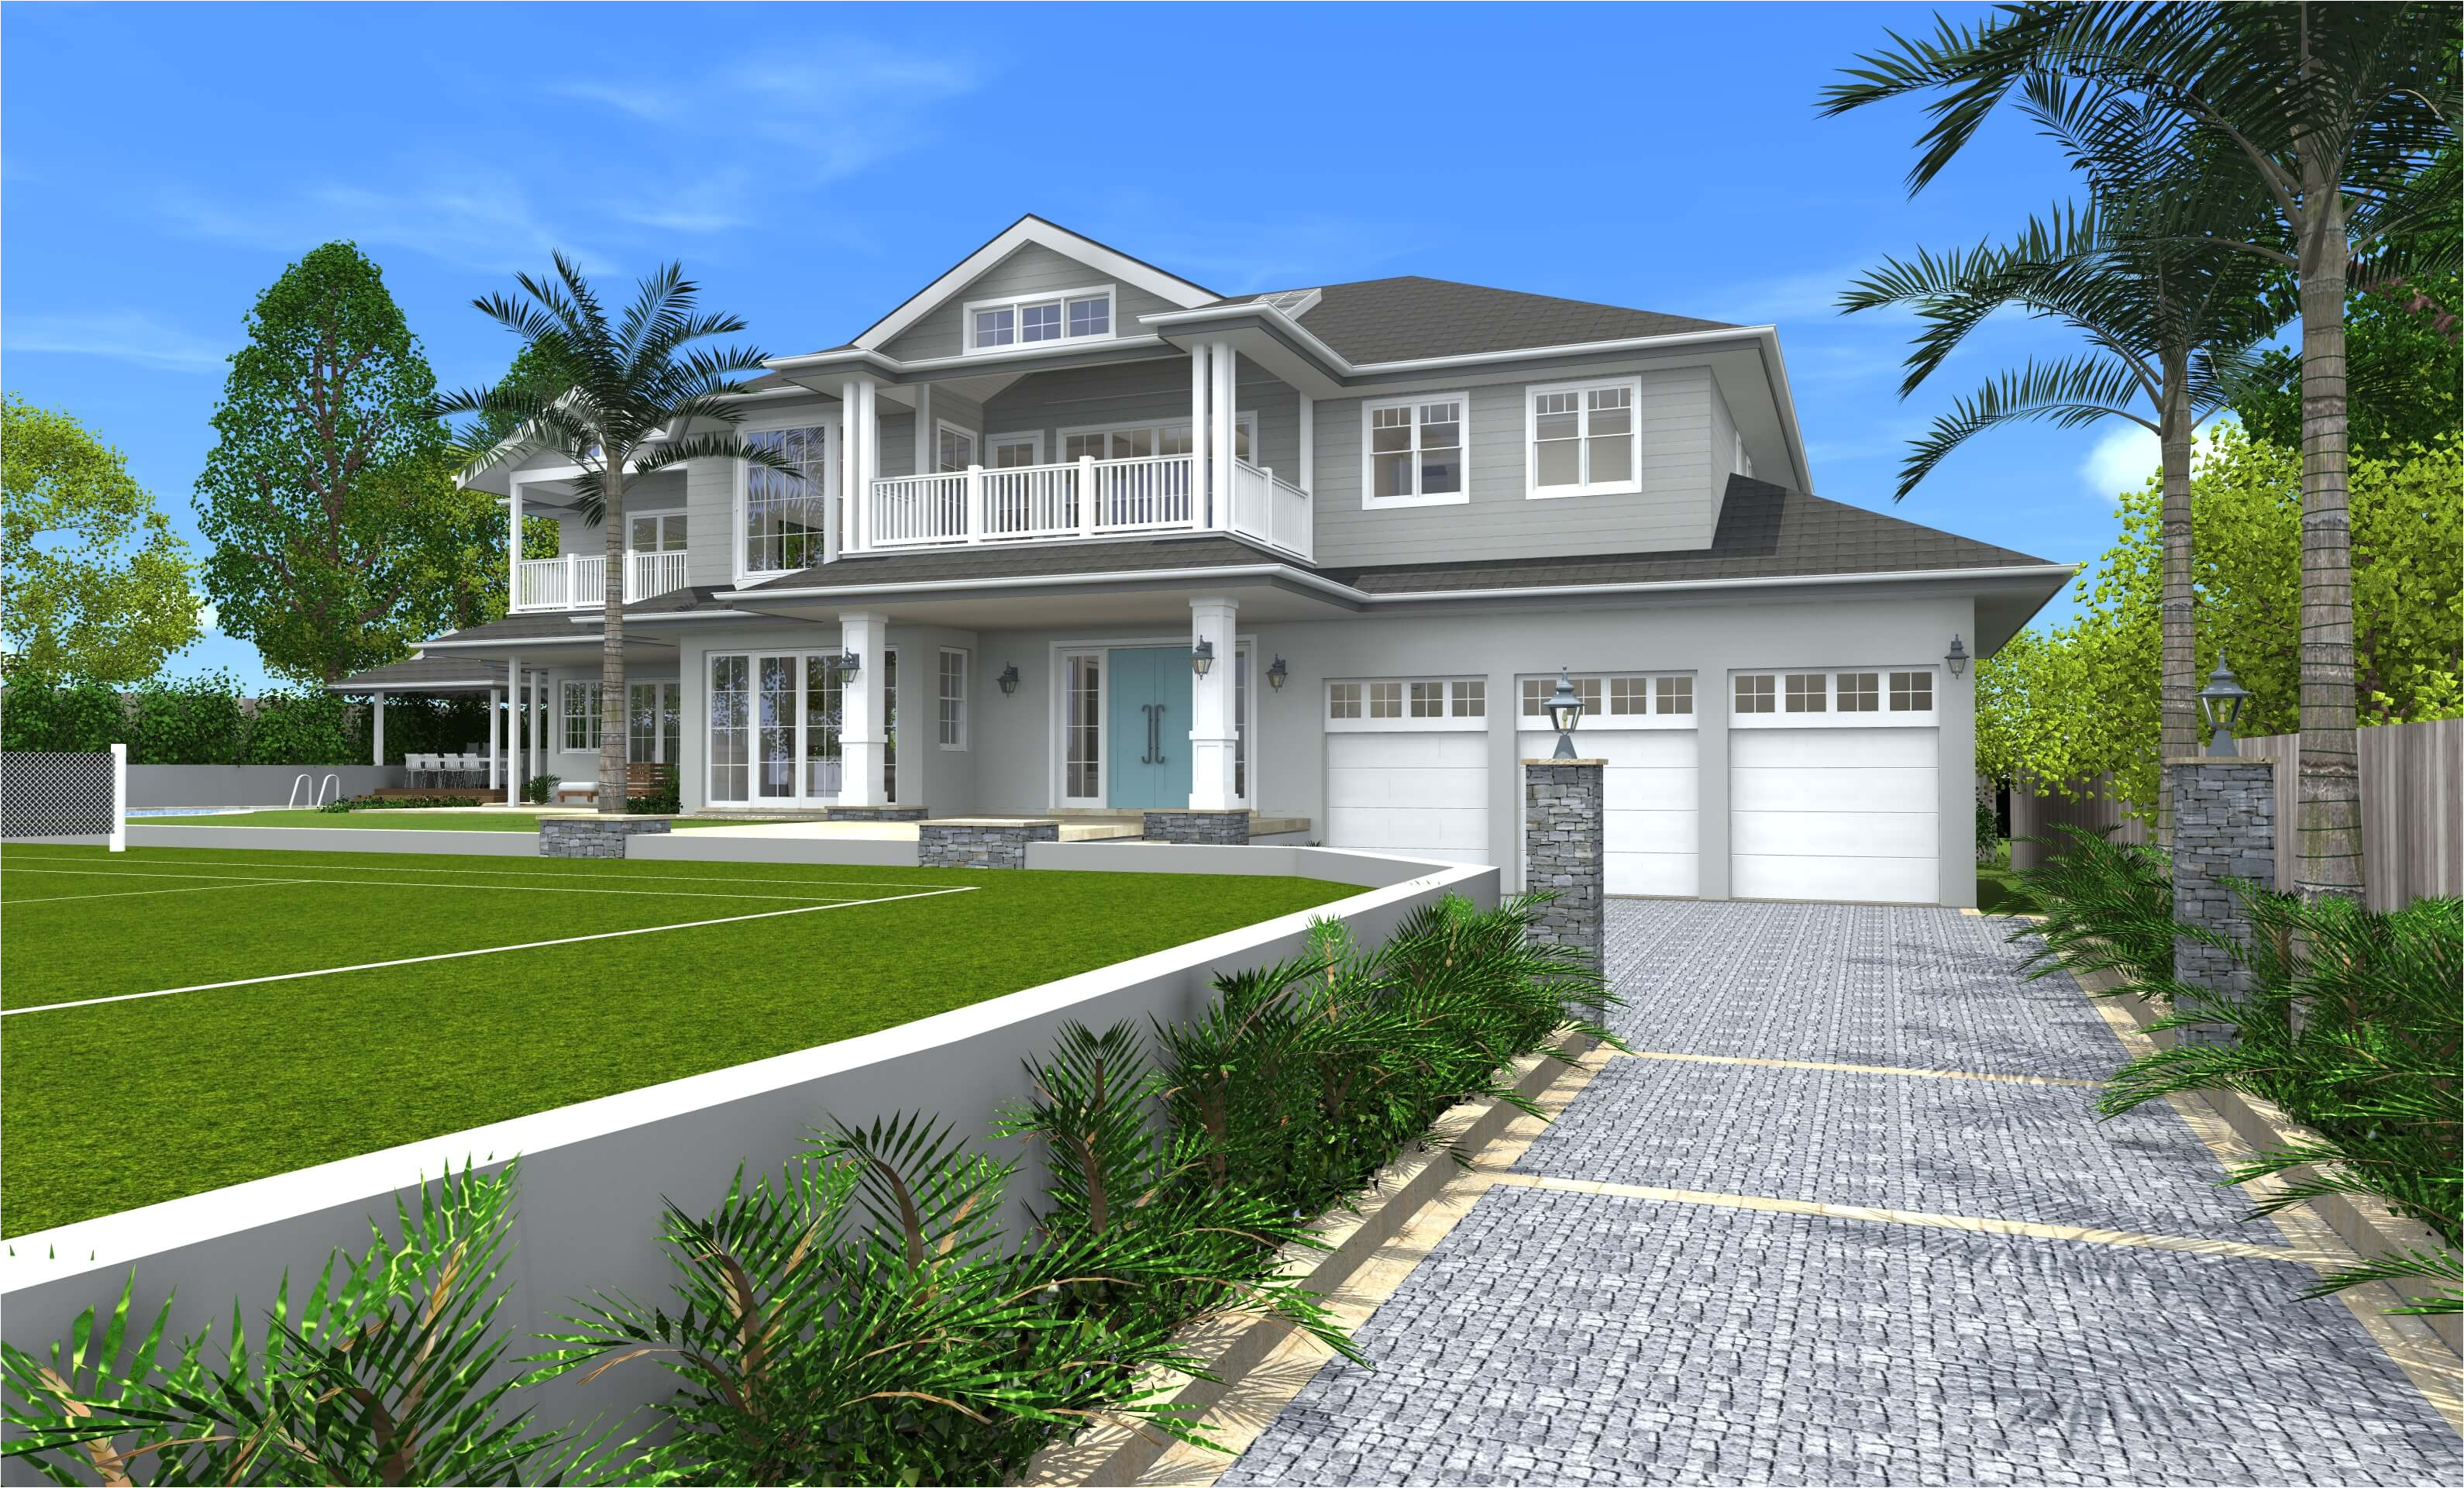 3d home designs hamptons style